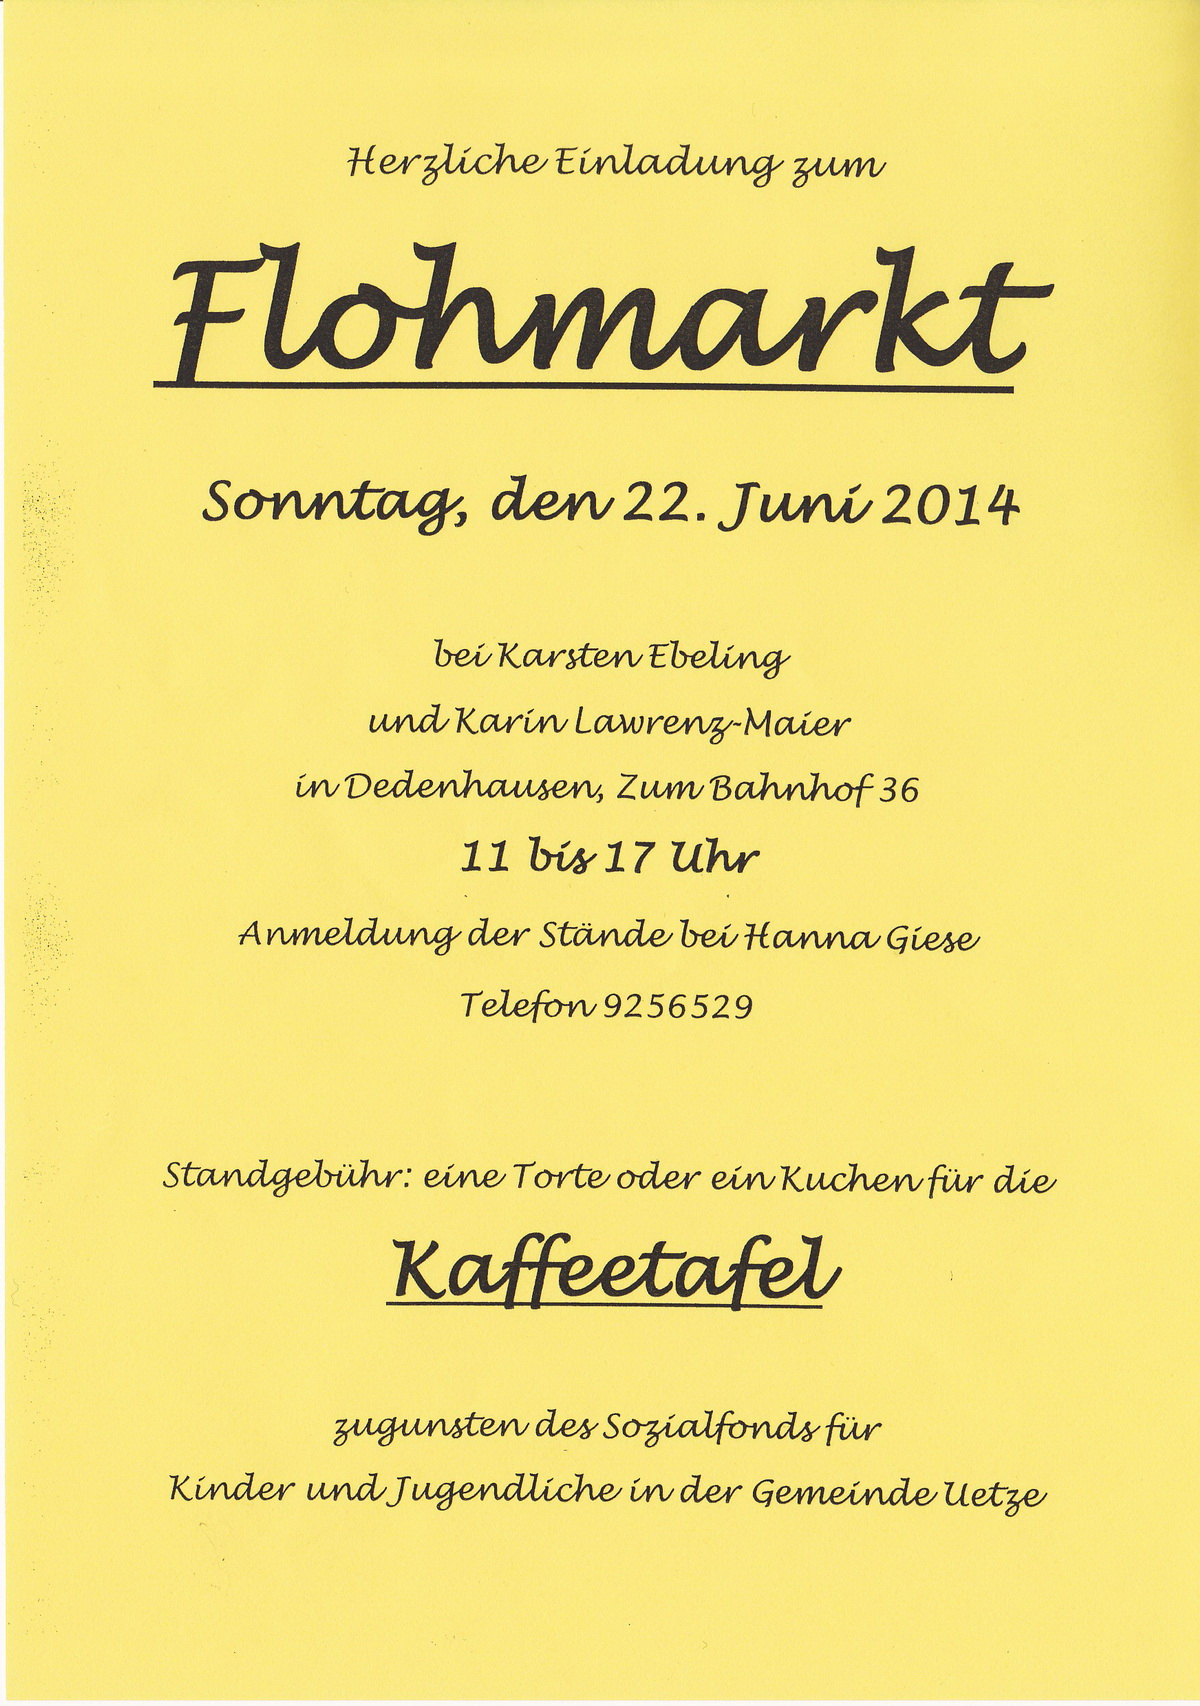 dedenhausen online einladung flohmarkt. Black Bedroom Furniture Sets. Home Design Ideas